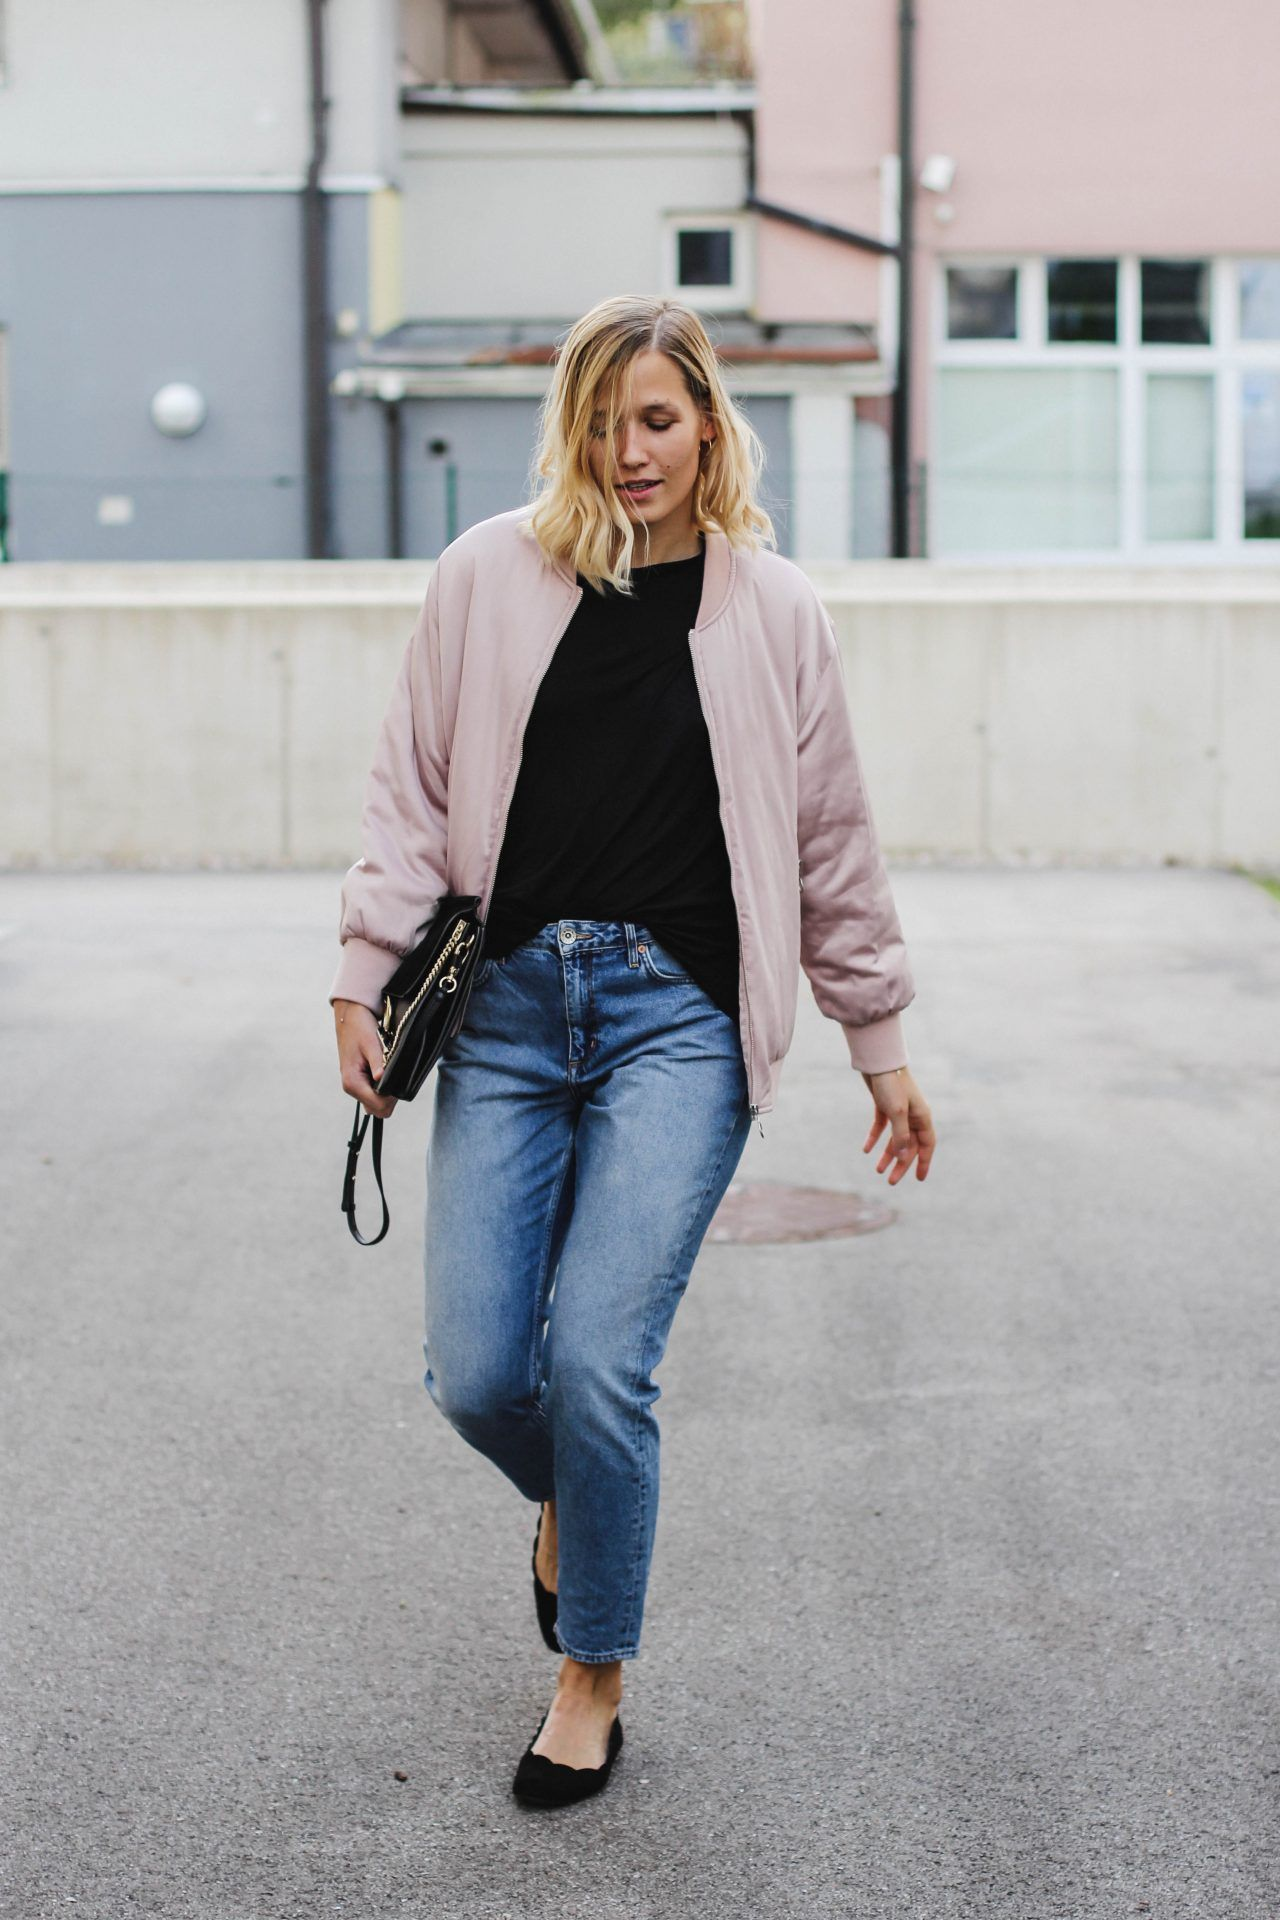 What Color Shirt To Wear With Light Pink Jeans Cotswold Hire